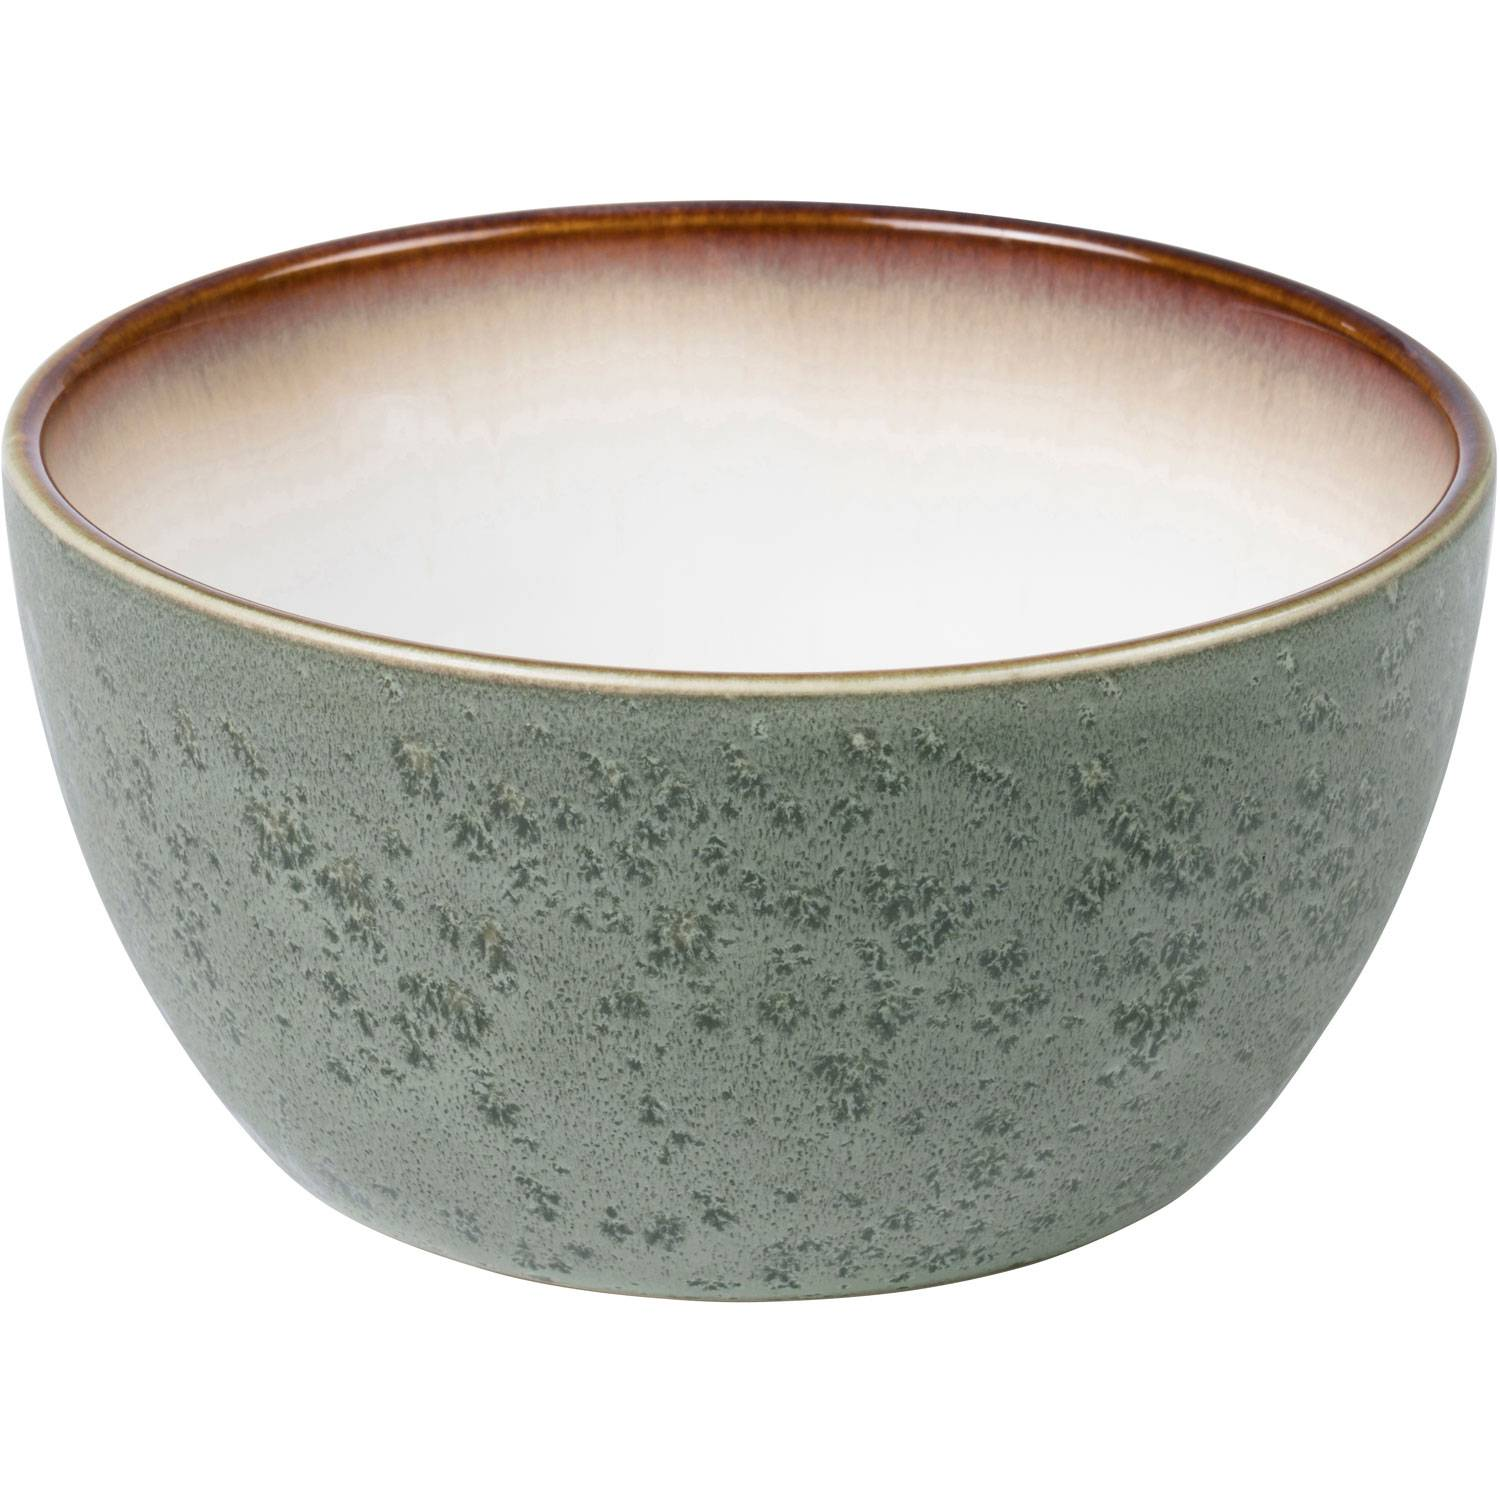 Bitz Bitz Bowl 14 cm, Green/Off-White